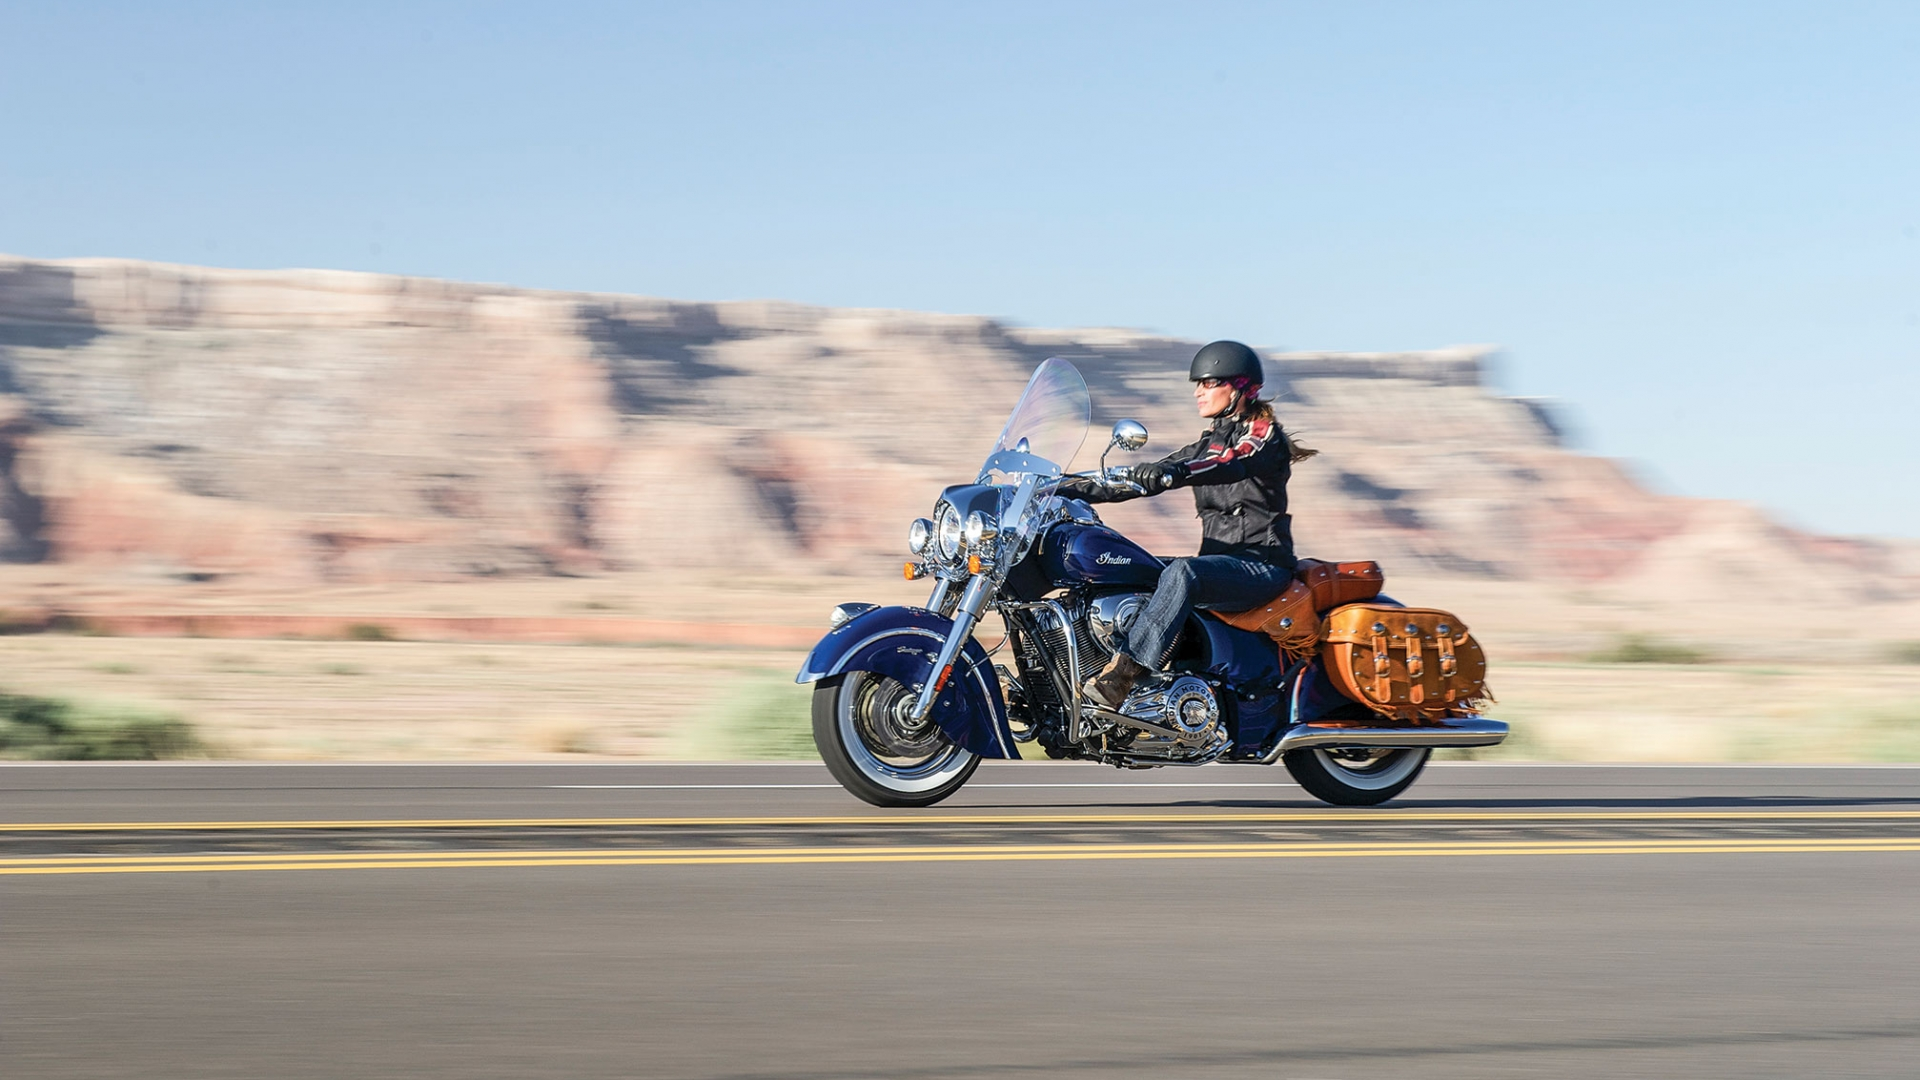 Indian Chief Vintage 2014 - 1920x1080